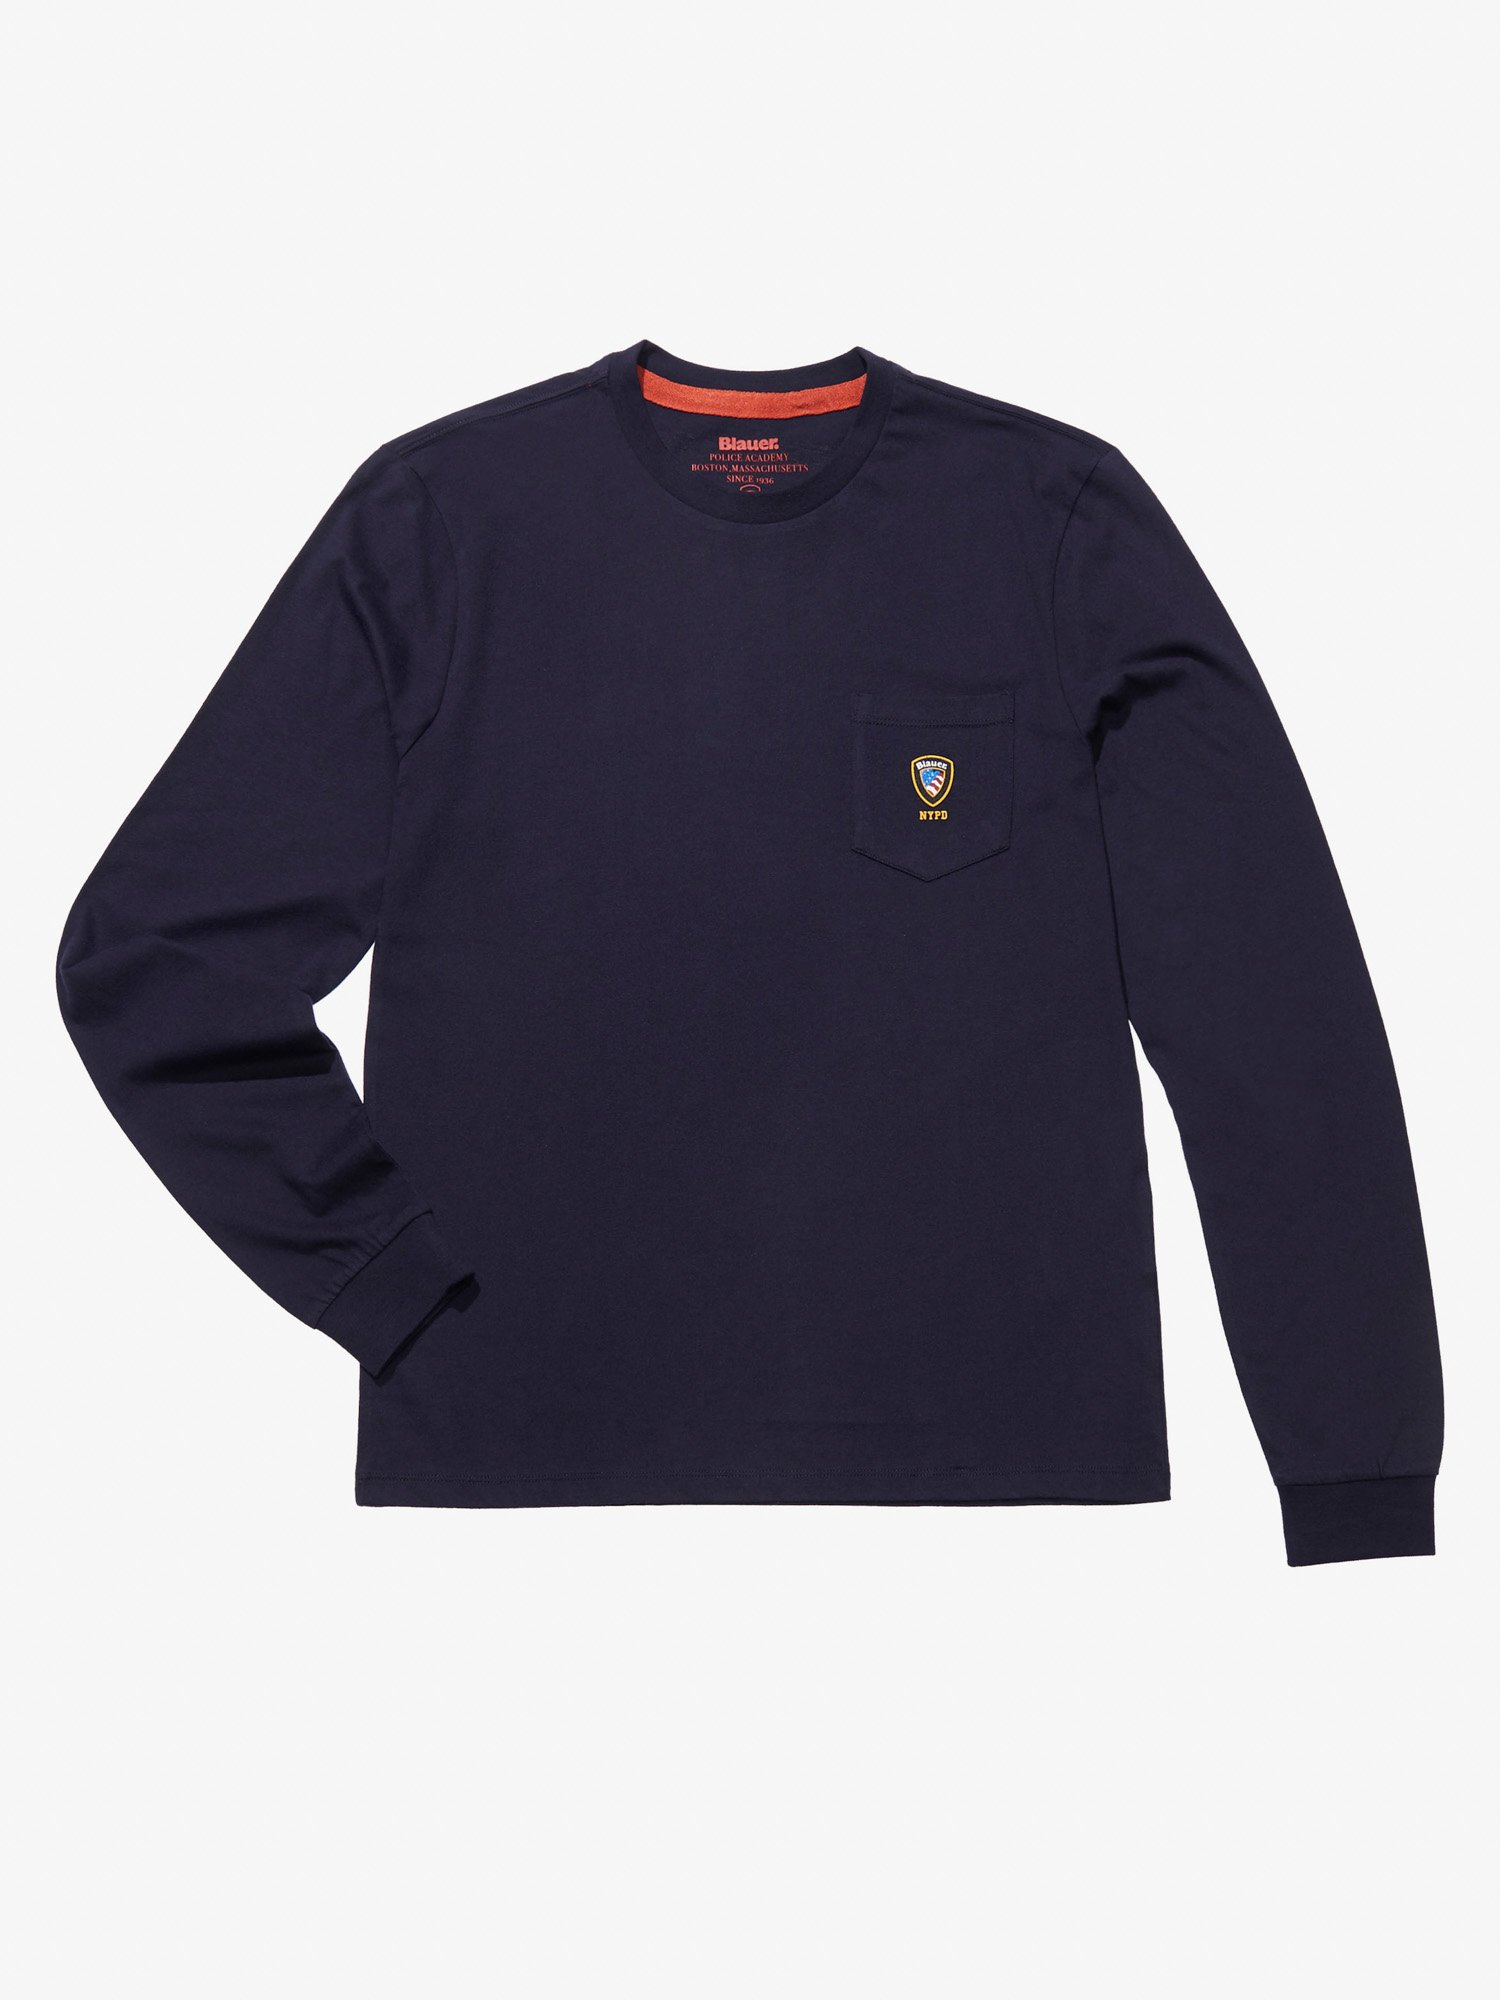 Blauer - NYPD JERSEY SWEATER - Dark Night Blue - Blauer